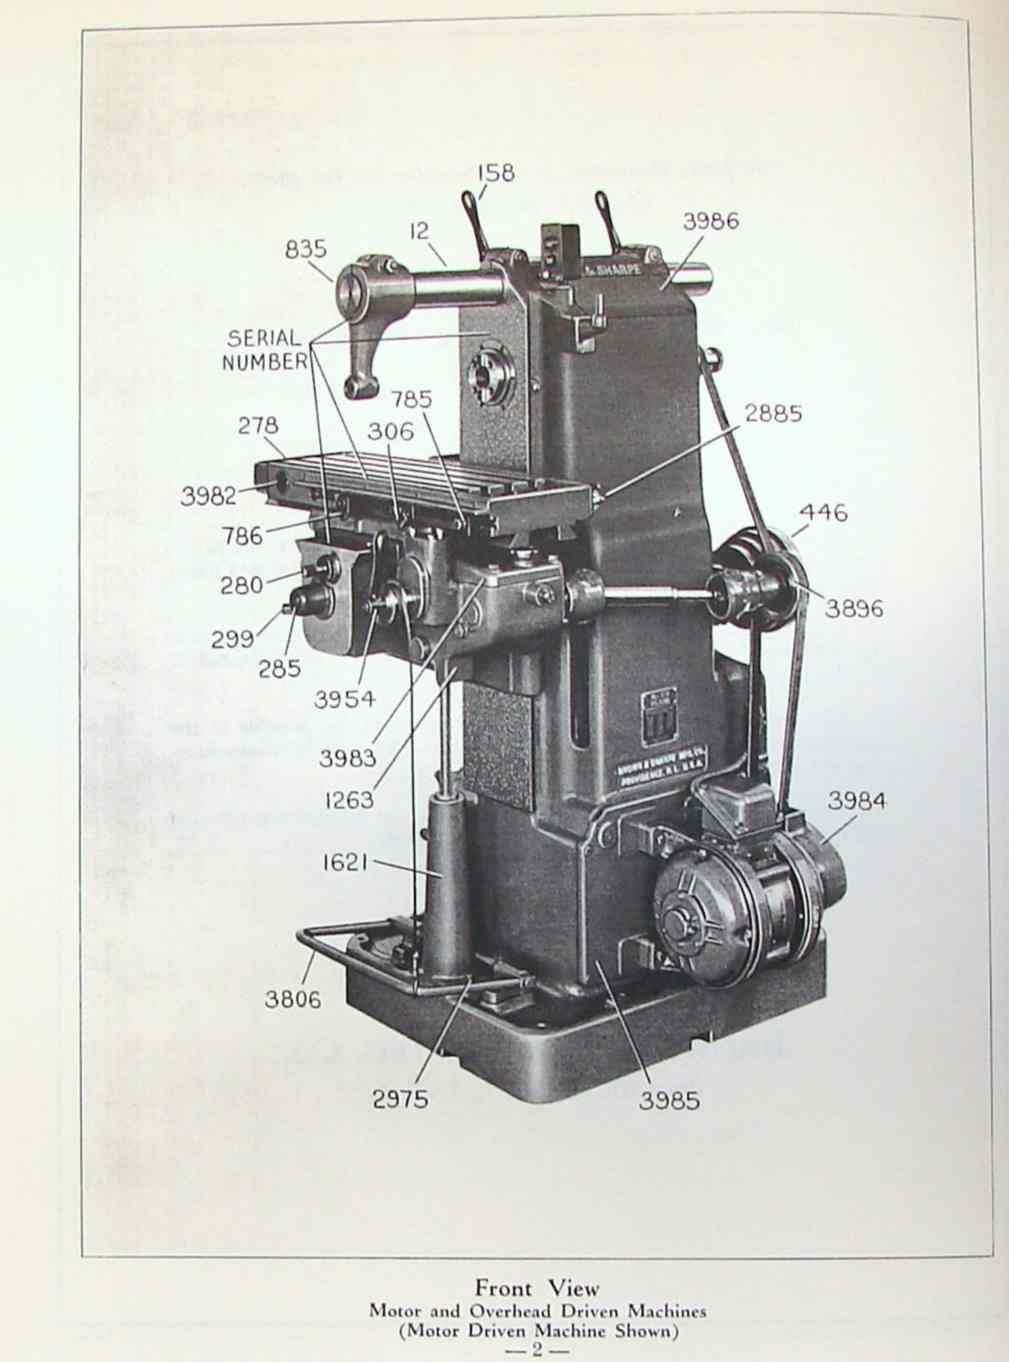 BROWN & SHARPE No. OY Plain Horizontal Milling Machine Parts Manual | Ozark Tool Manuals & Books